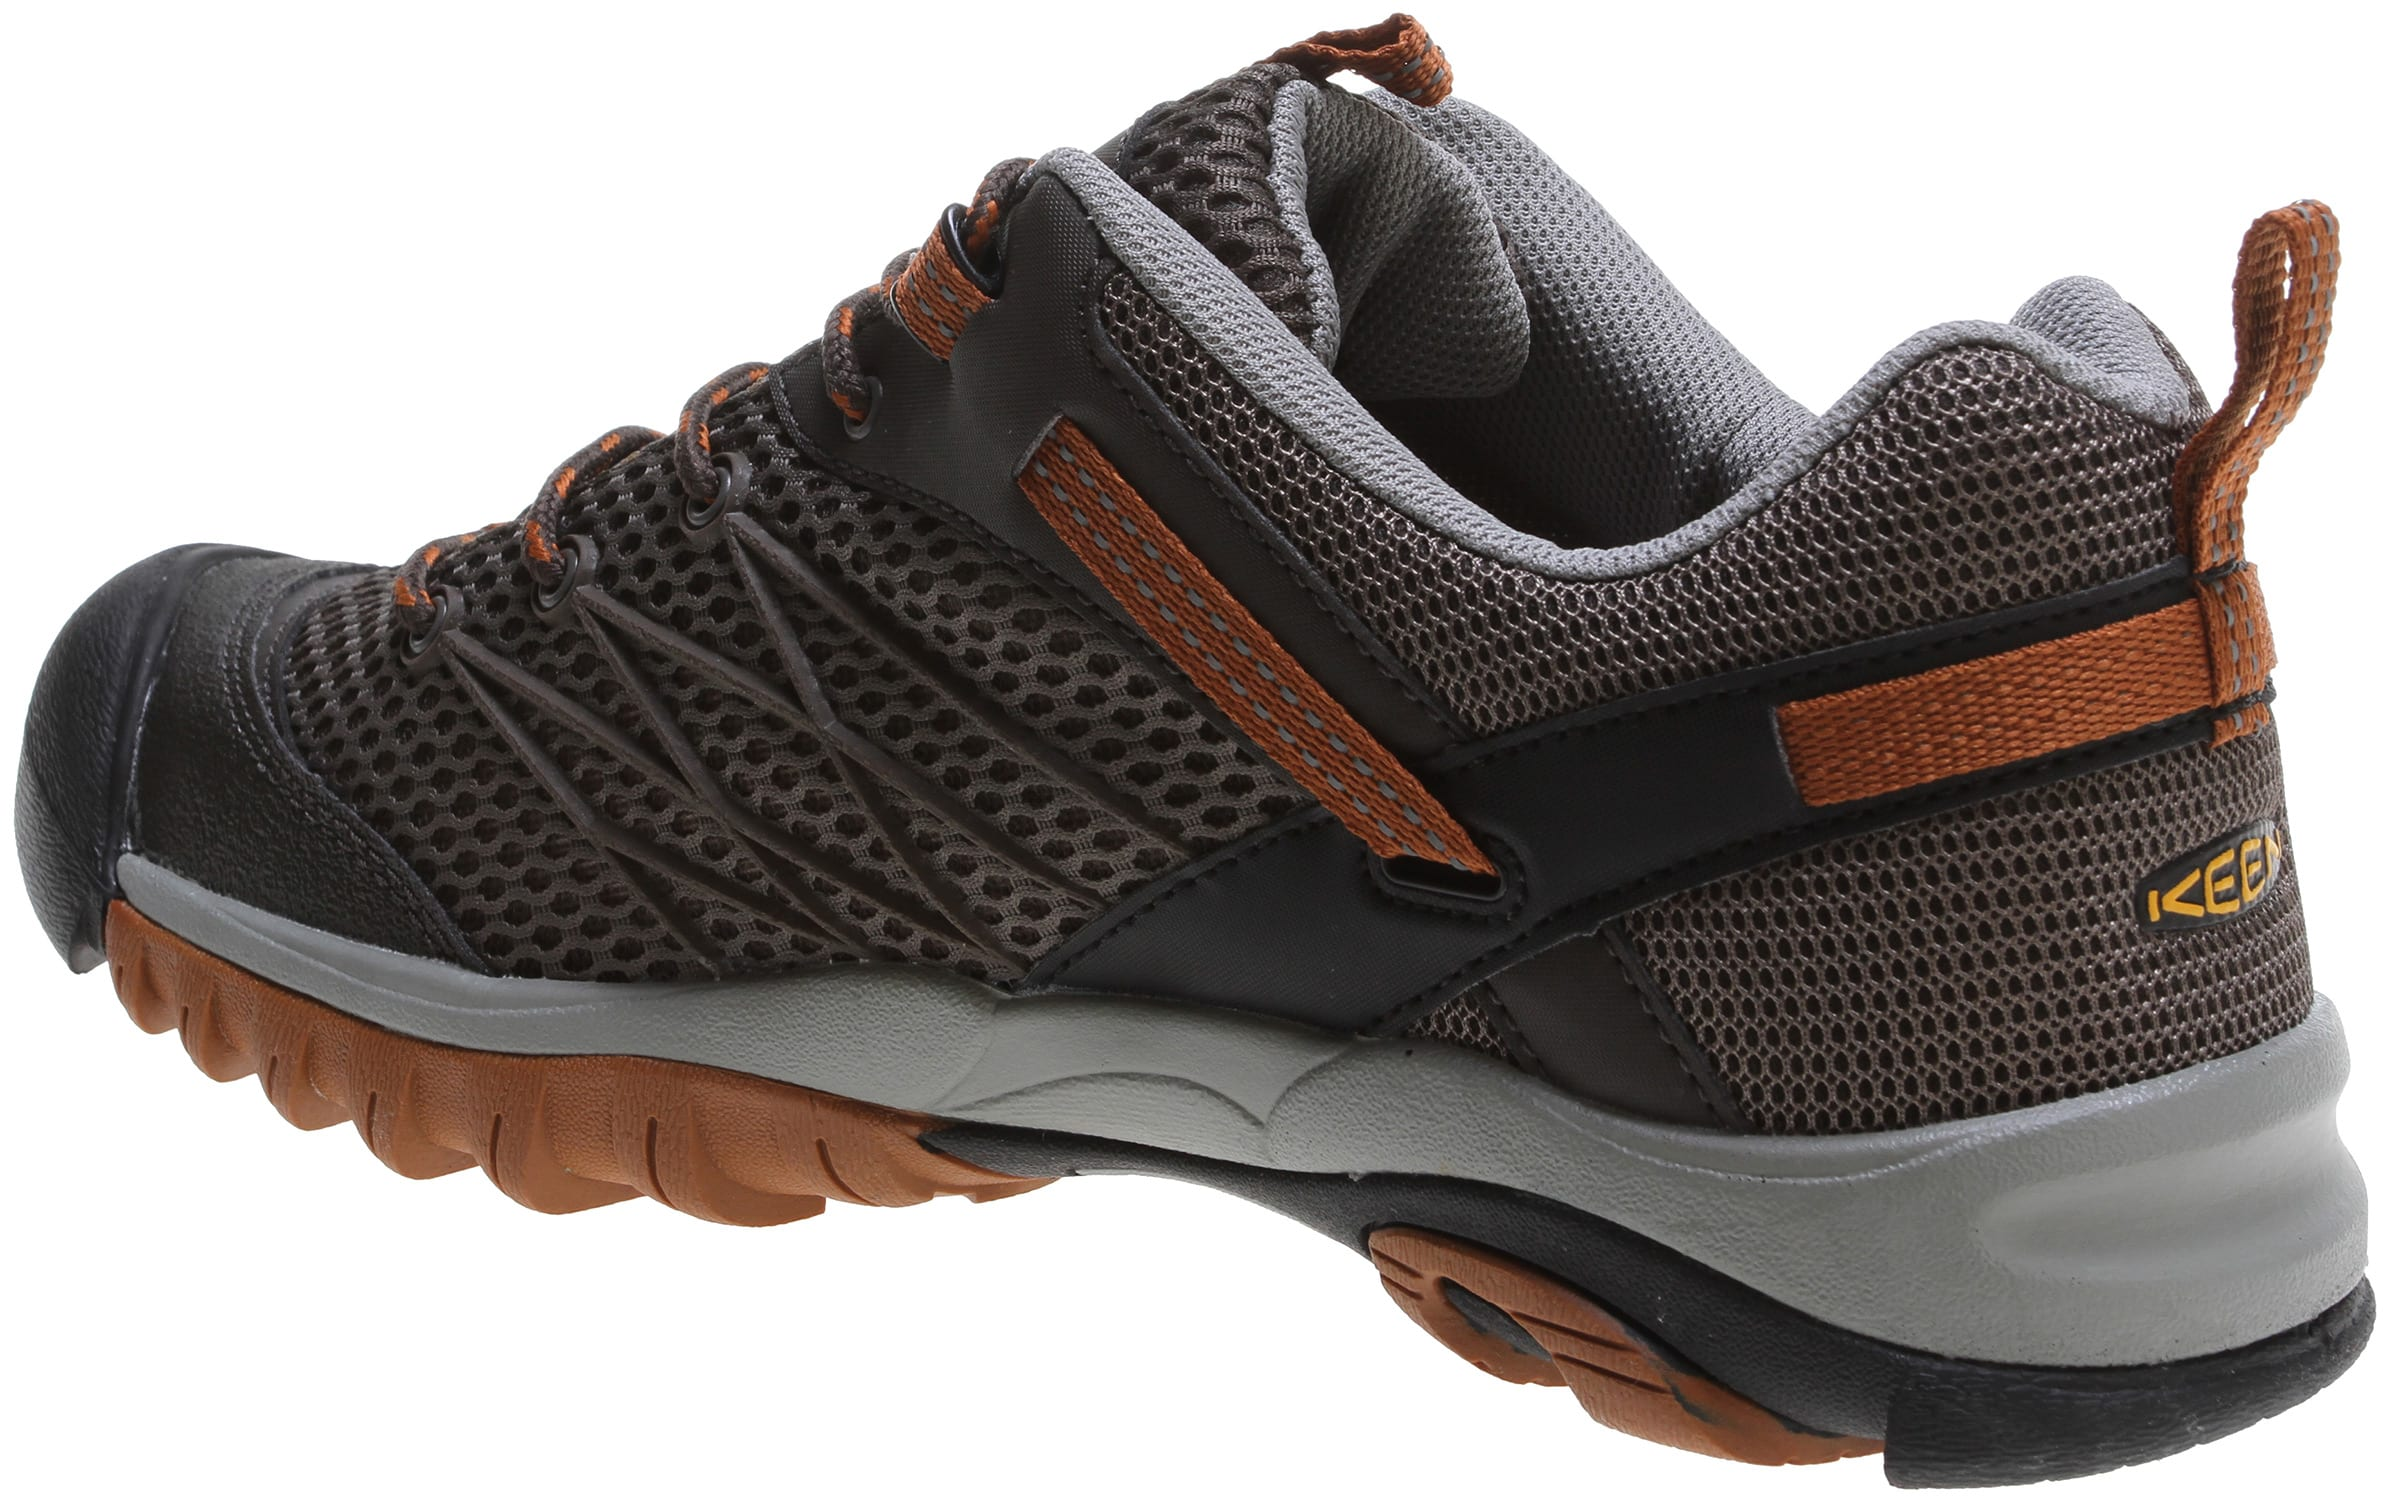 Shoes online for women. Buy keen shoes online